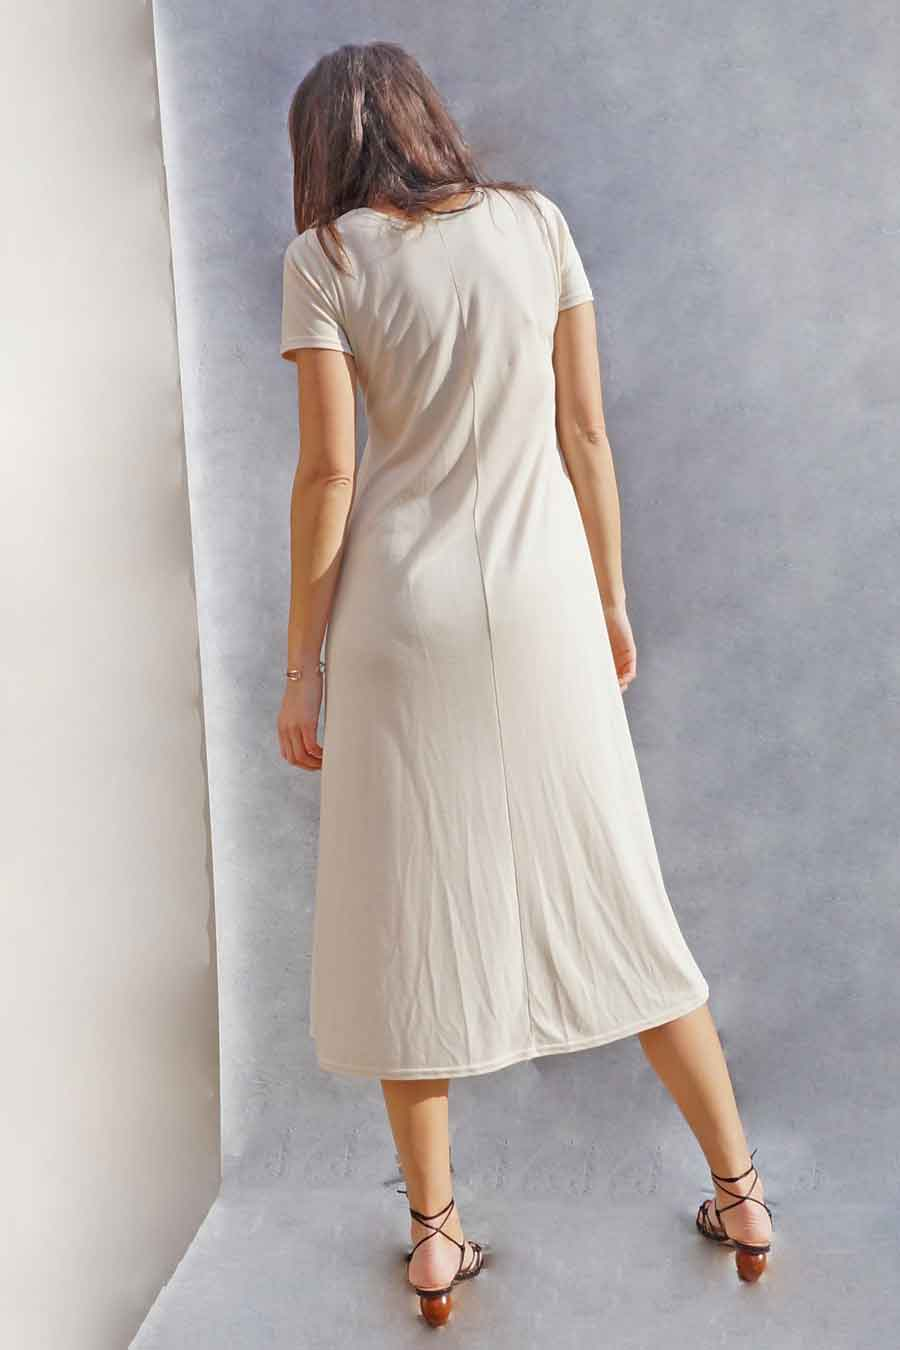 Long Cream Simple Jersey T-Shirt Dress - Casual Dresses for women - ada's attic vintage